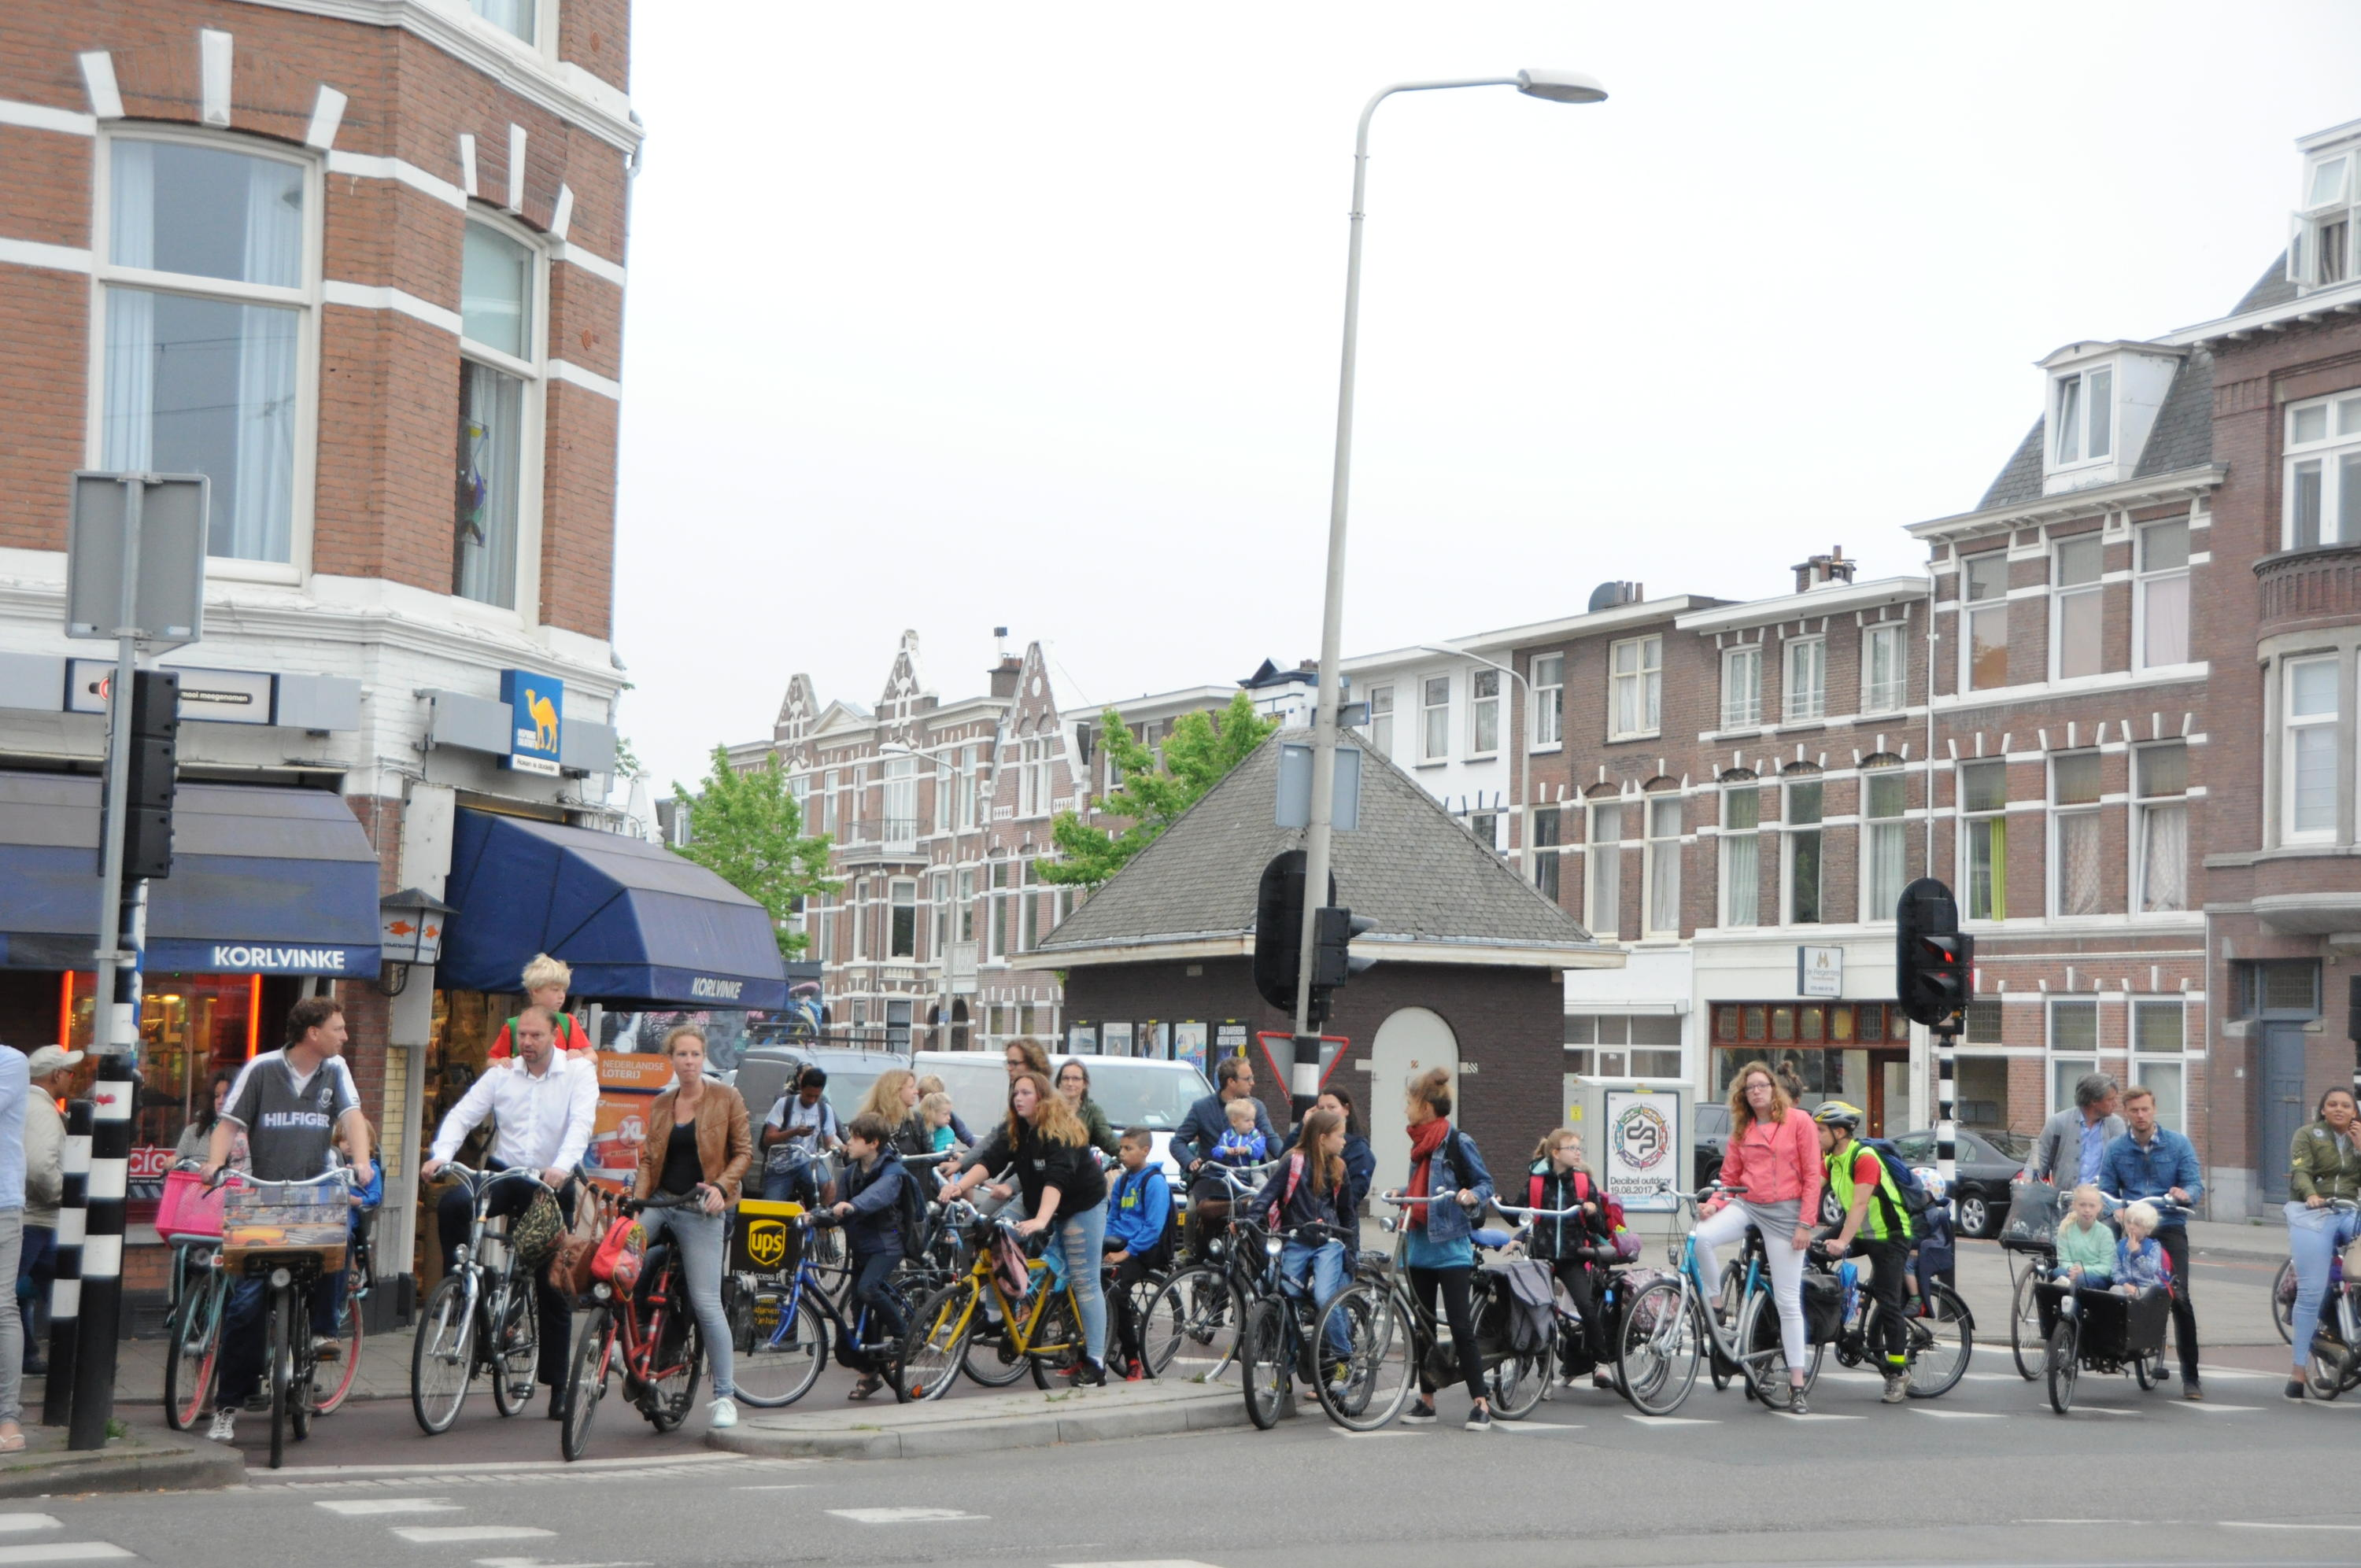 A group of people riding bicycles on the street